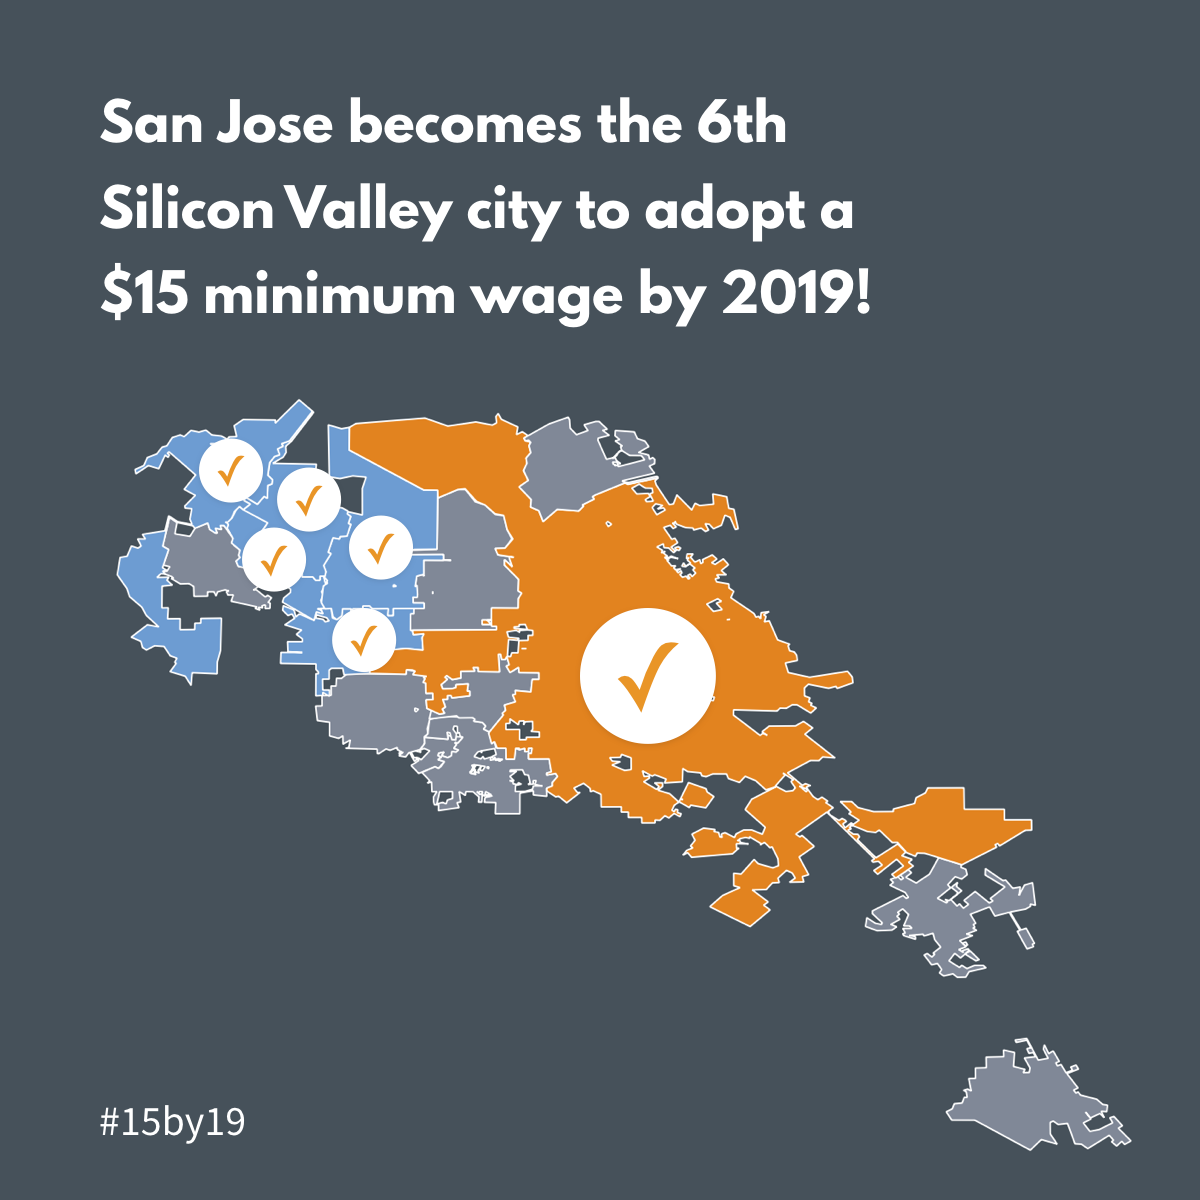 San Jose Becomes The 6th Silicon Valley City To Adopt A 15 Minimum Wage By 2019